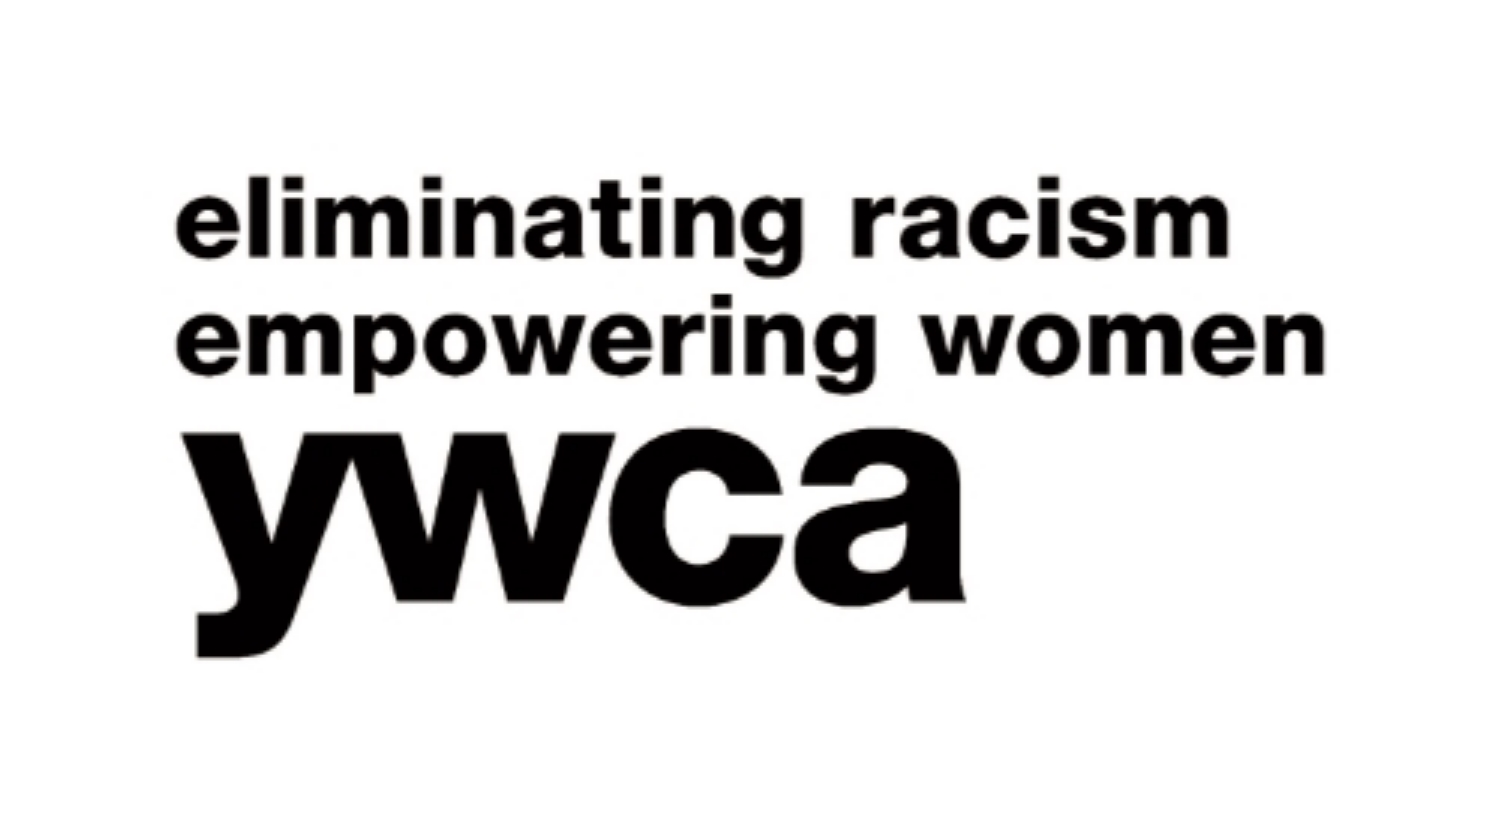 The McLean County YWCA is a key partner in Not In Our Town's battle against bigotry and bullying.